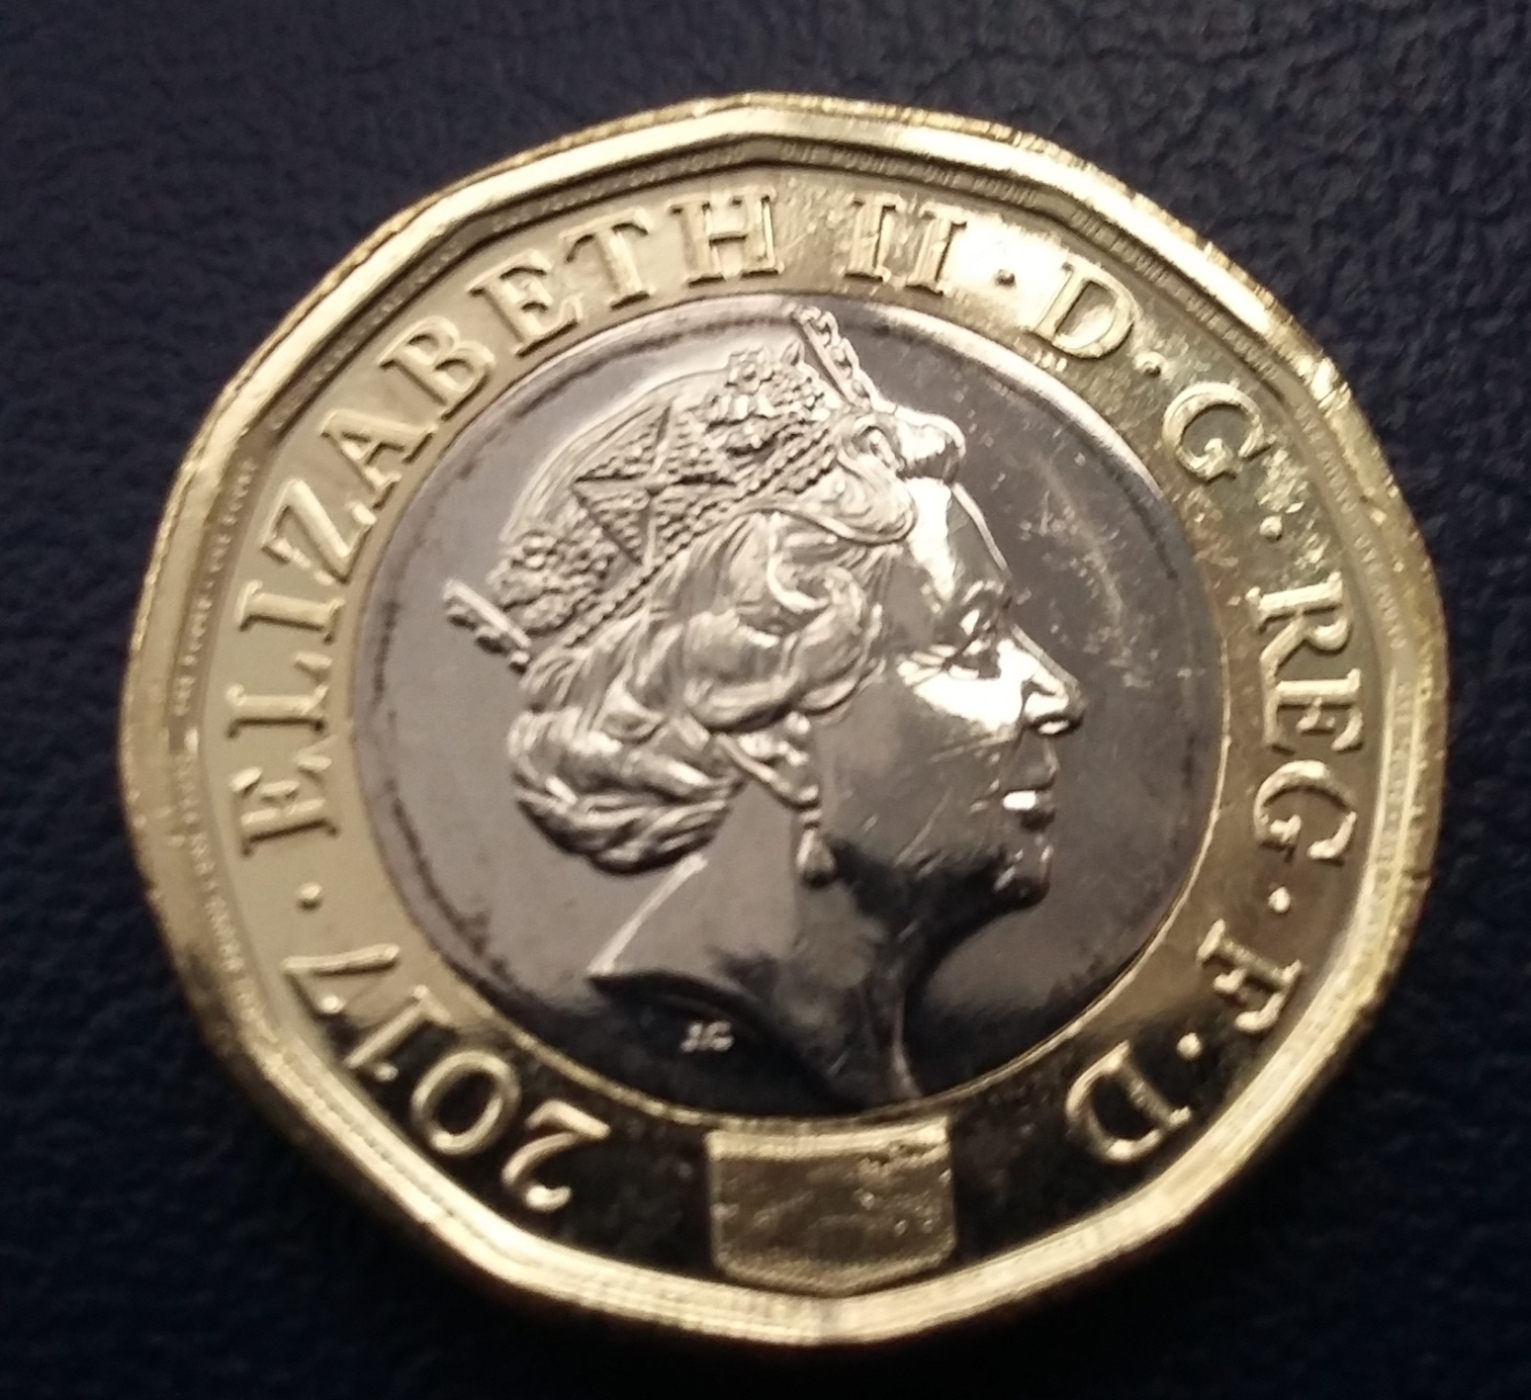 1 Pound 2017 Elizabeth Ii 1952 Present Great Britain Coin 41019